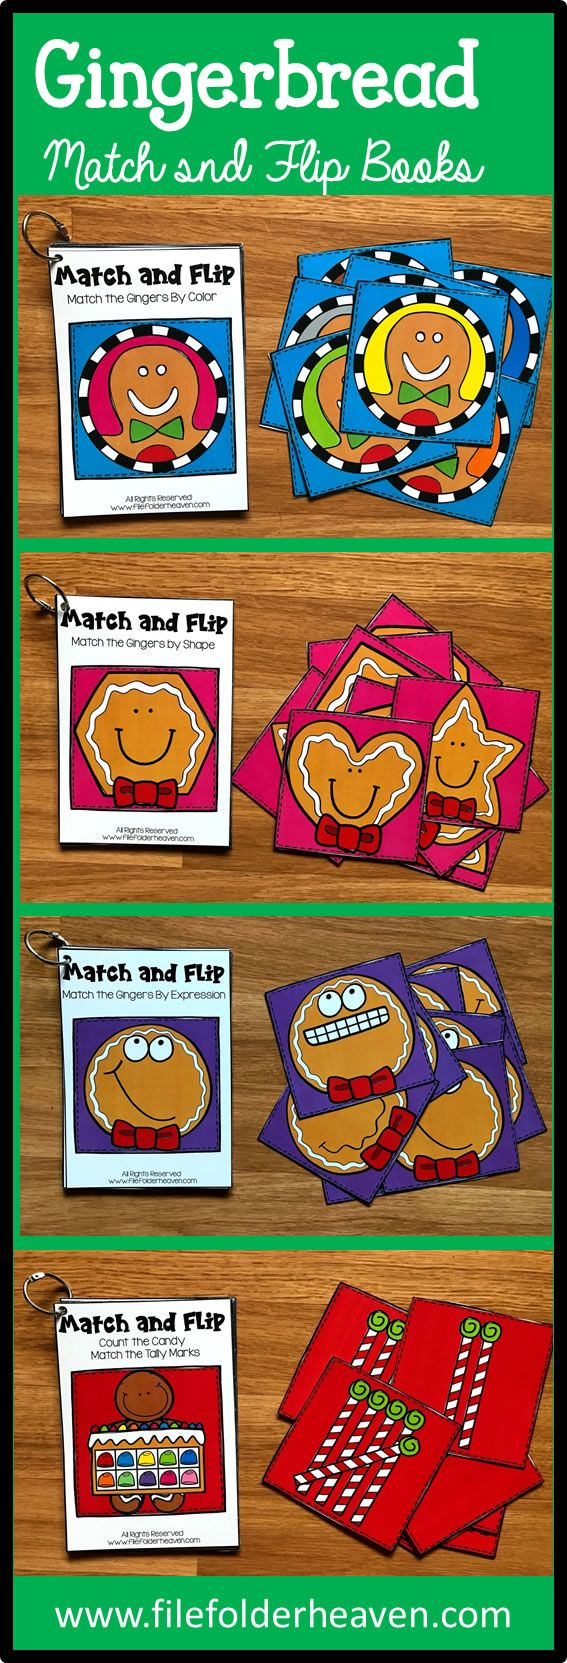 These Gingerbread Man Match and Flip Books focus on basic matching skills. In these activities, students work on matching picture to picture (or by emotion/expression), matching by color, and matching by shape, and matching by counting.  There are four Match and Flip Books included in this download.  Match the Gingerbread Man by Shape (Matching By Shape) Match the Gingerbread Man by Emotion/Expression (Matching By Picture/Emotion) Match the Gingerbread Man by Color (Matching By Color)